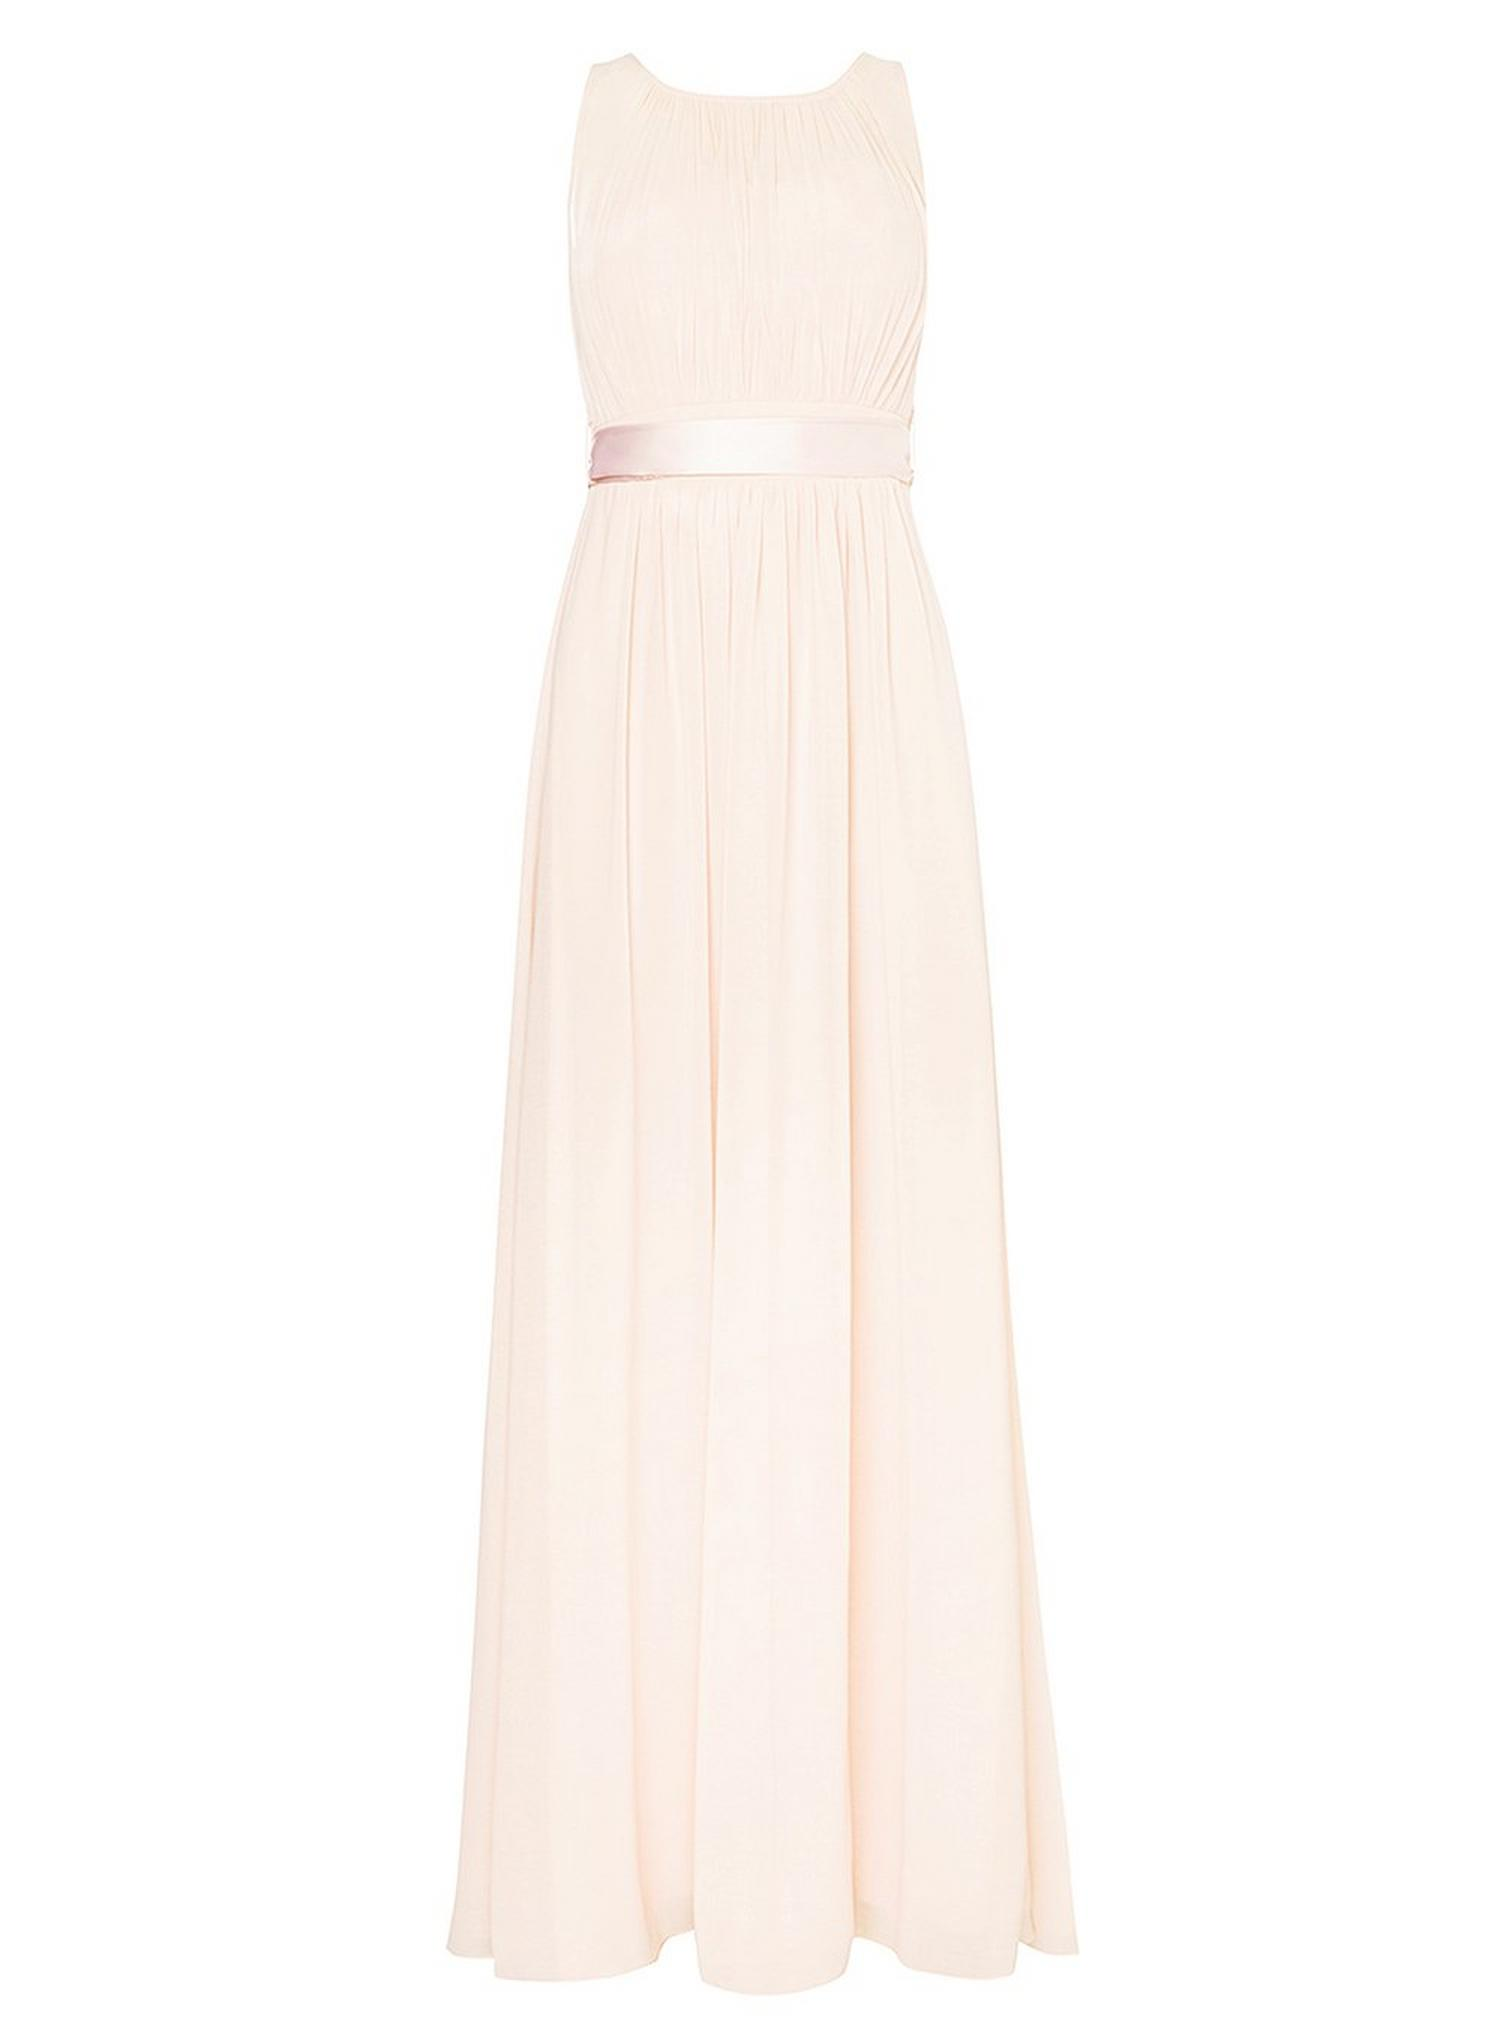 153 Petite Natalie Blush Maxi Dress image number 2